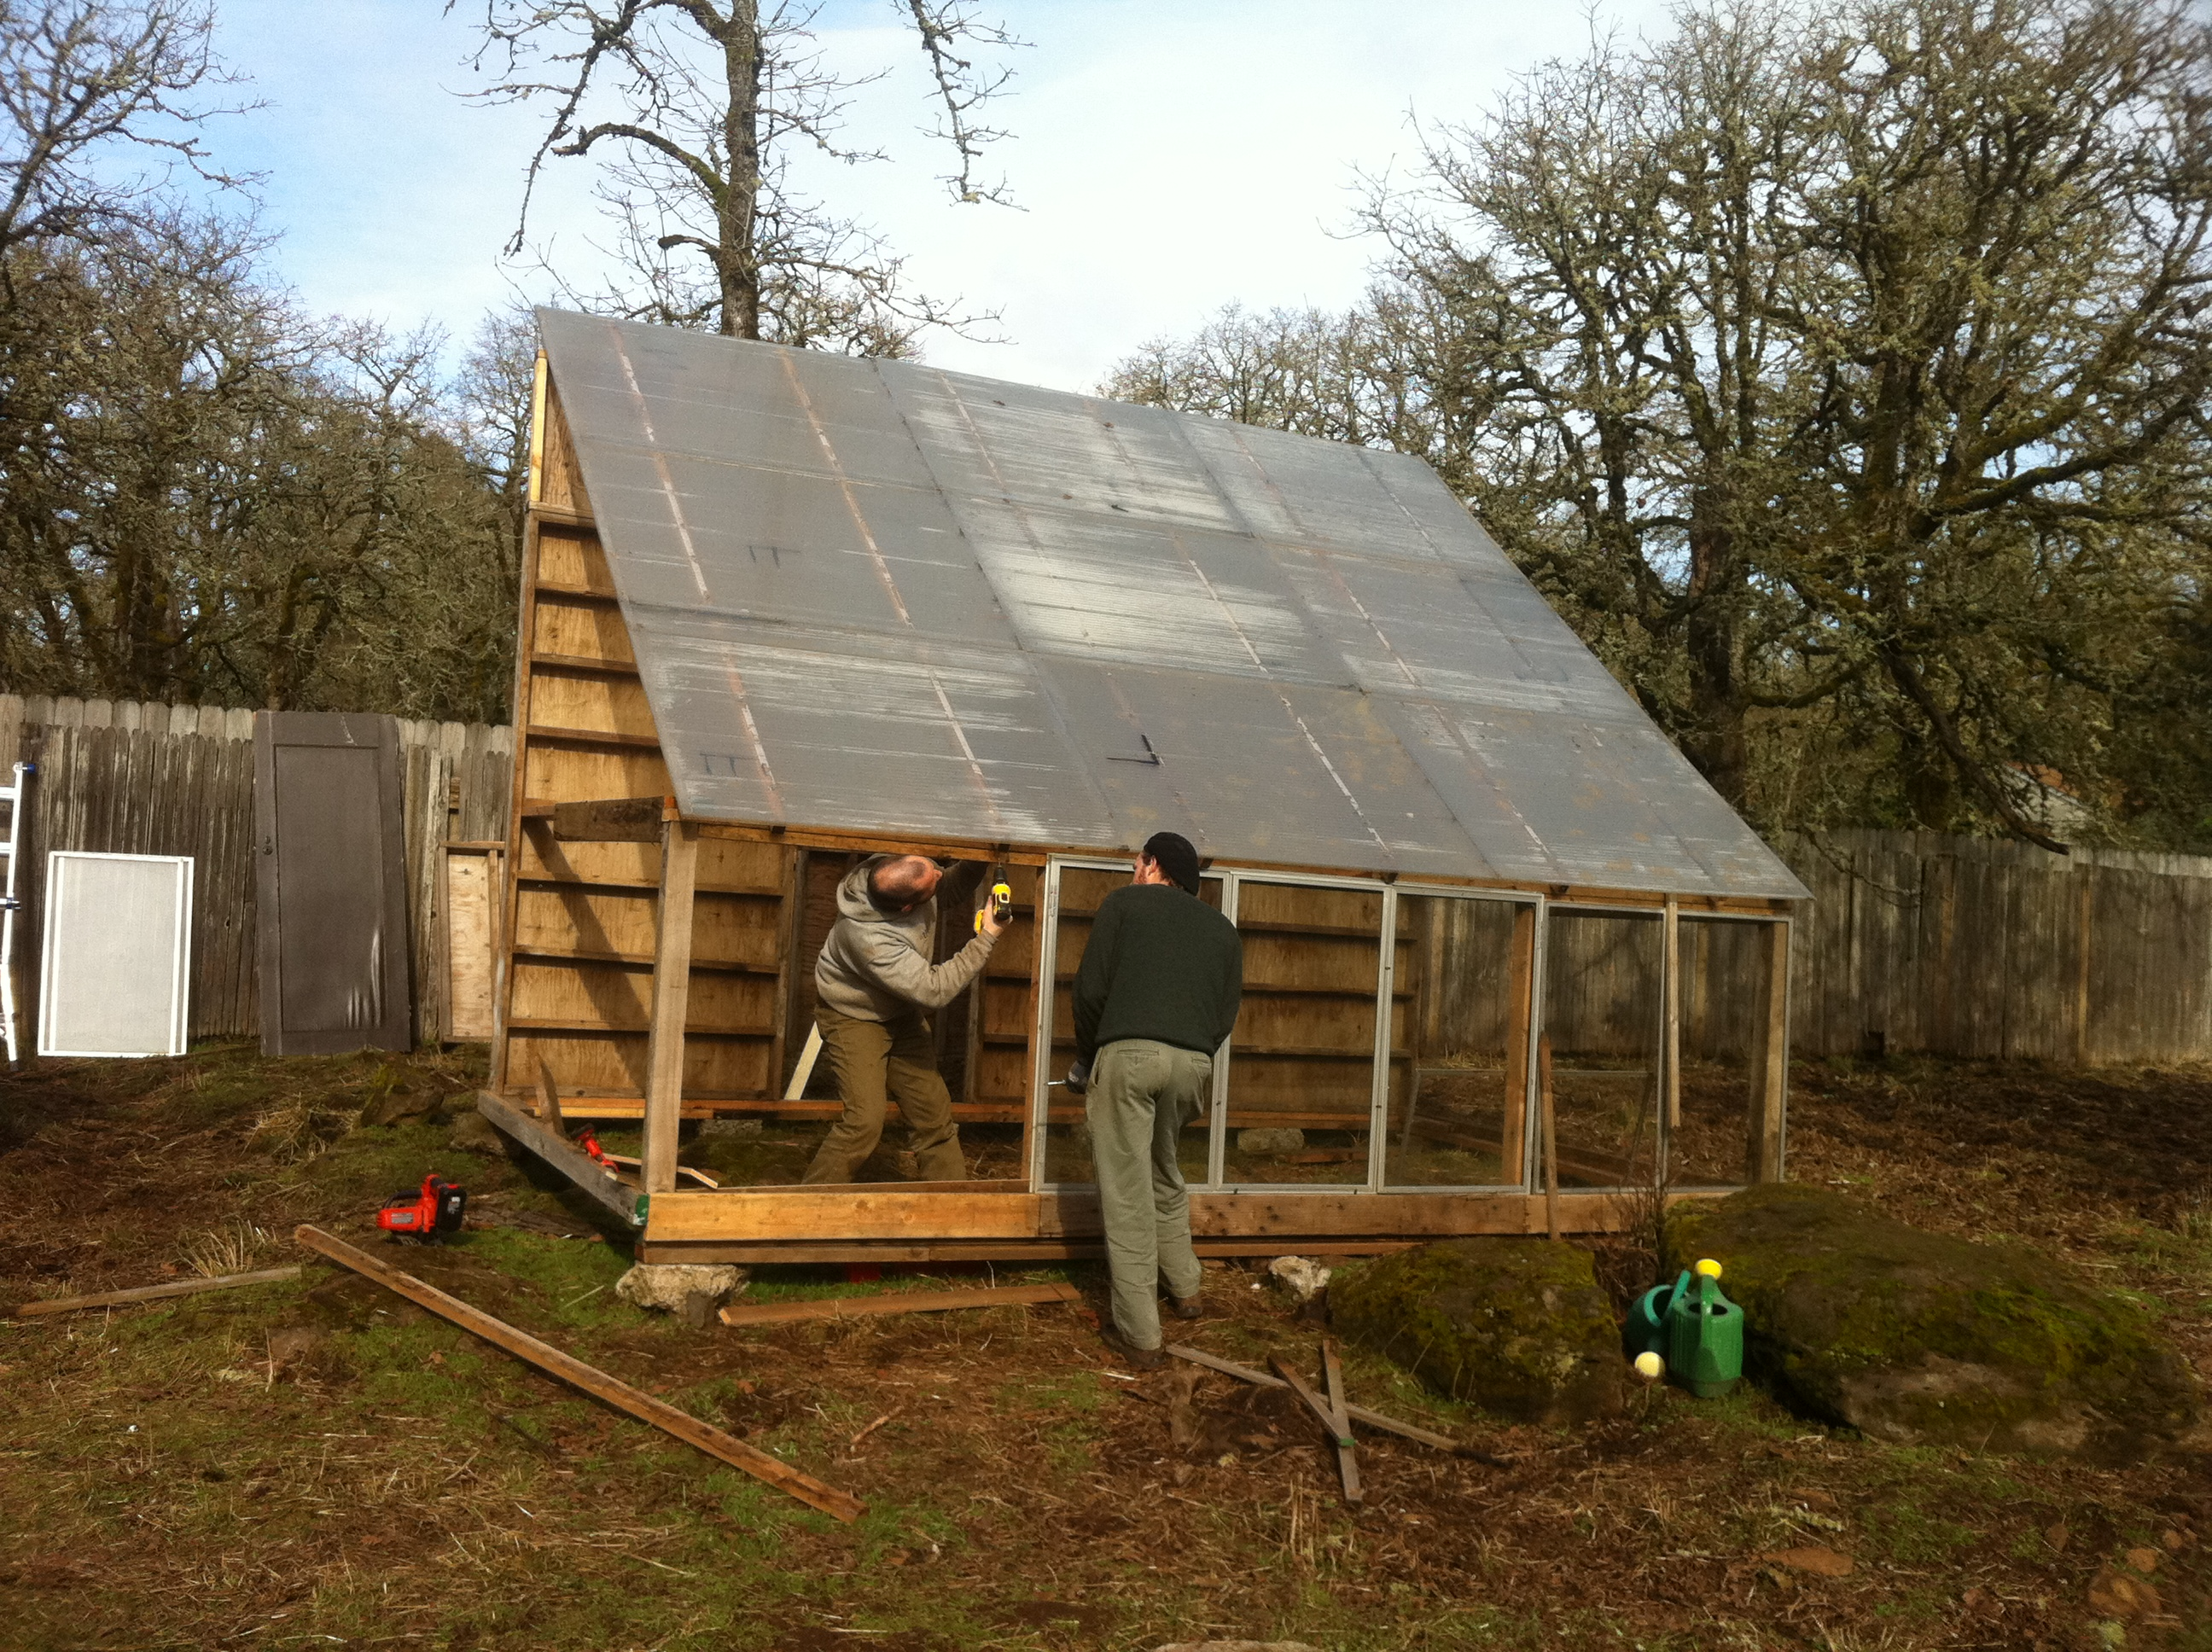 Build plans for wood frame greenhouse diy wood projects for children special51nsp - How to build a wooden greenhouse ...